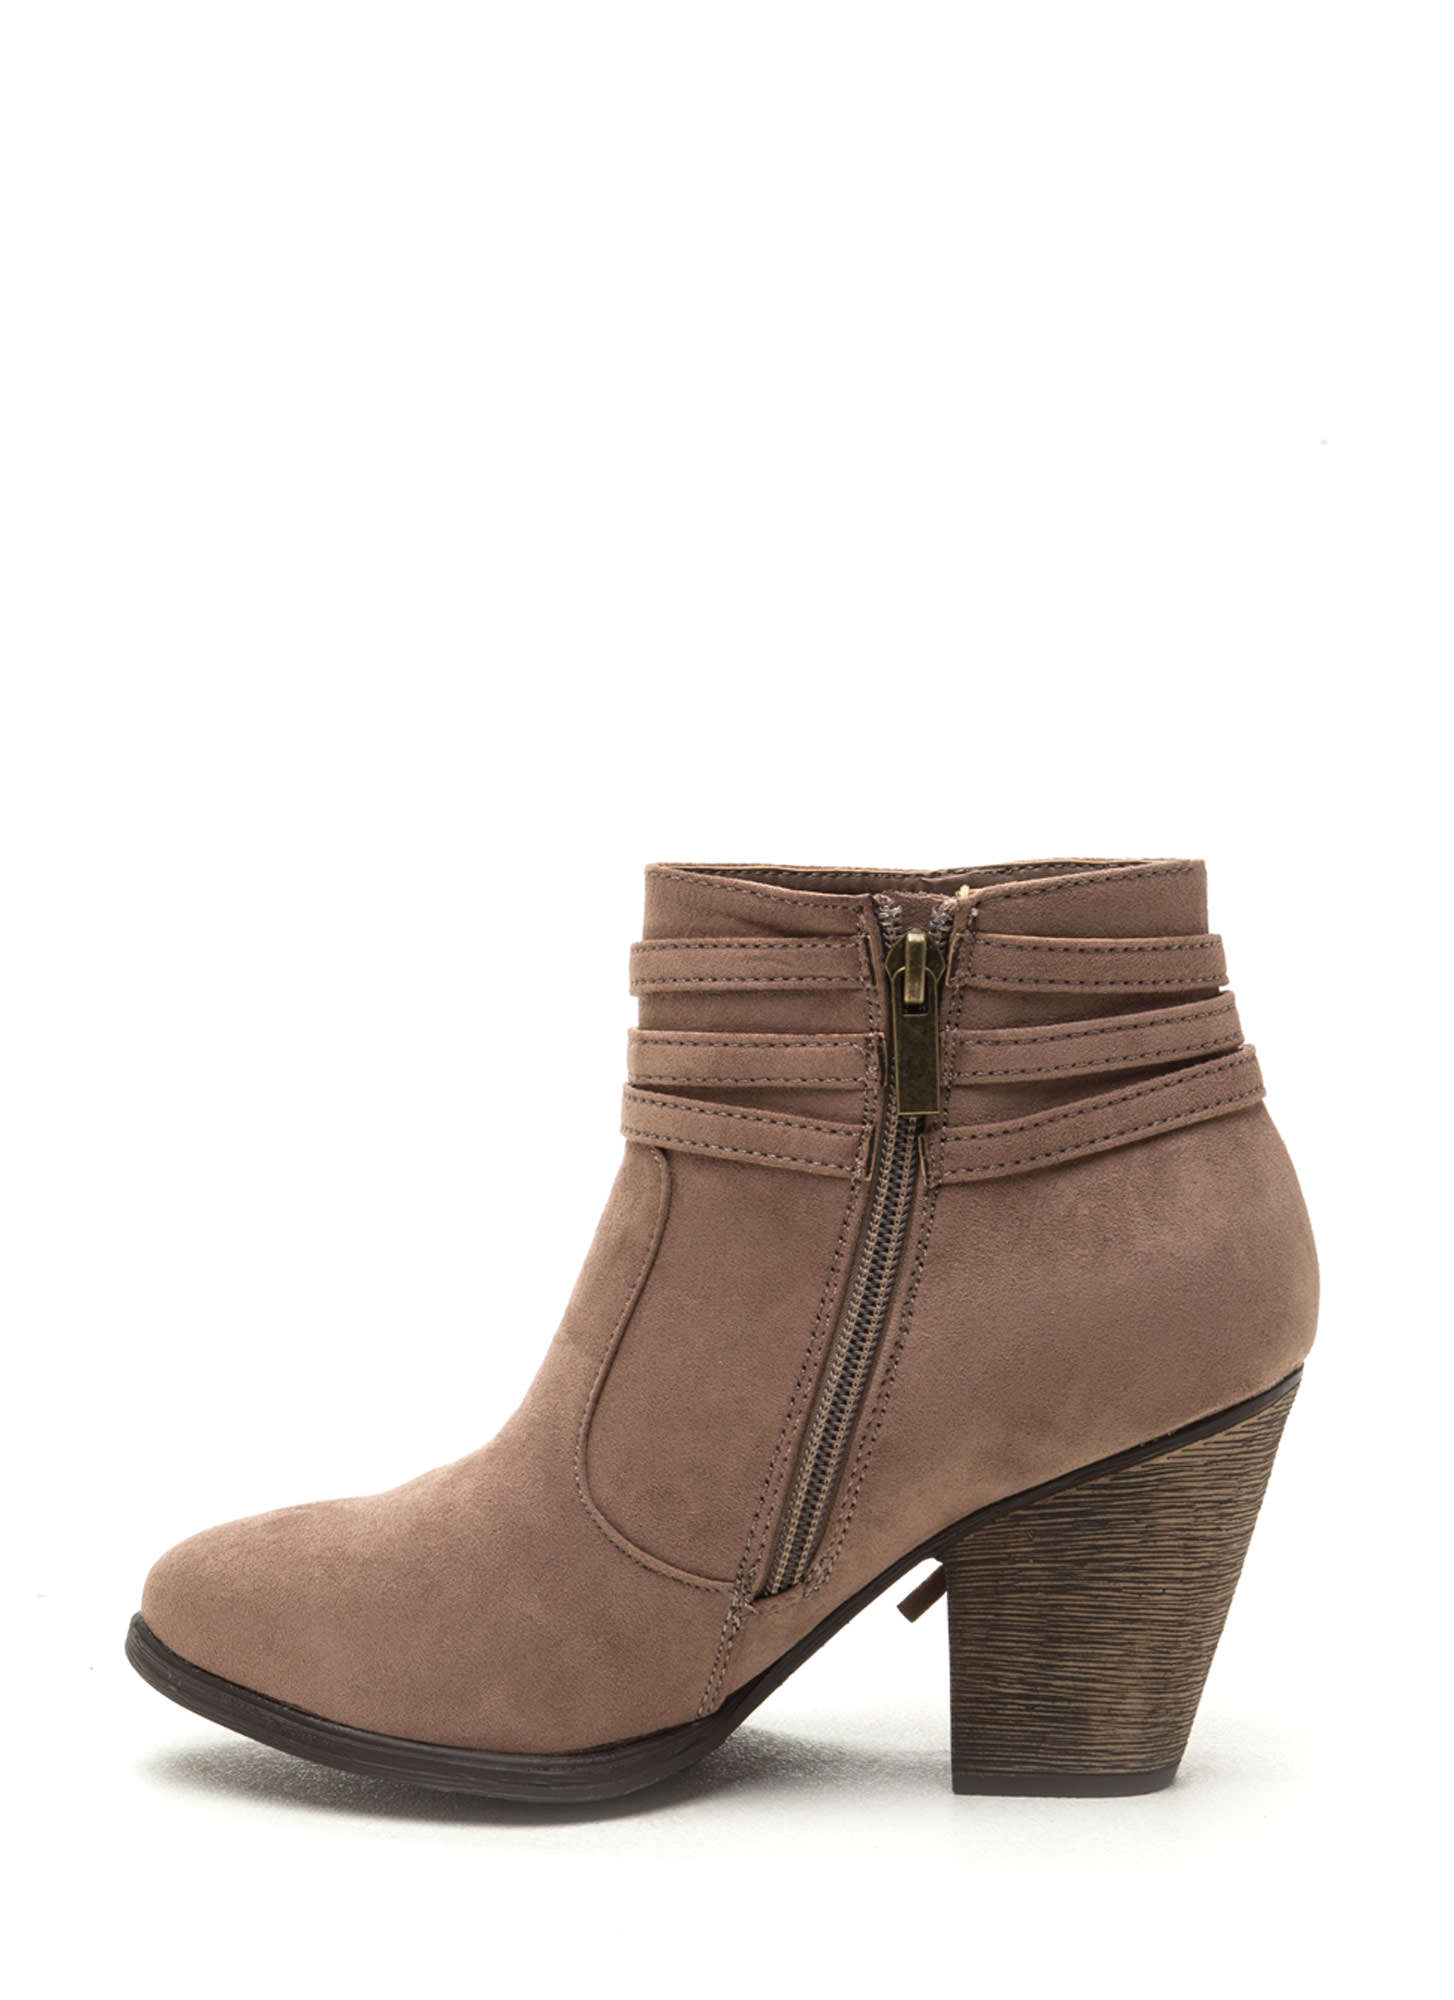 Fringe Benefit Faux Suede Booties TAUPE